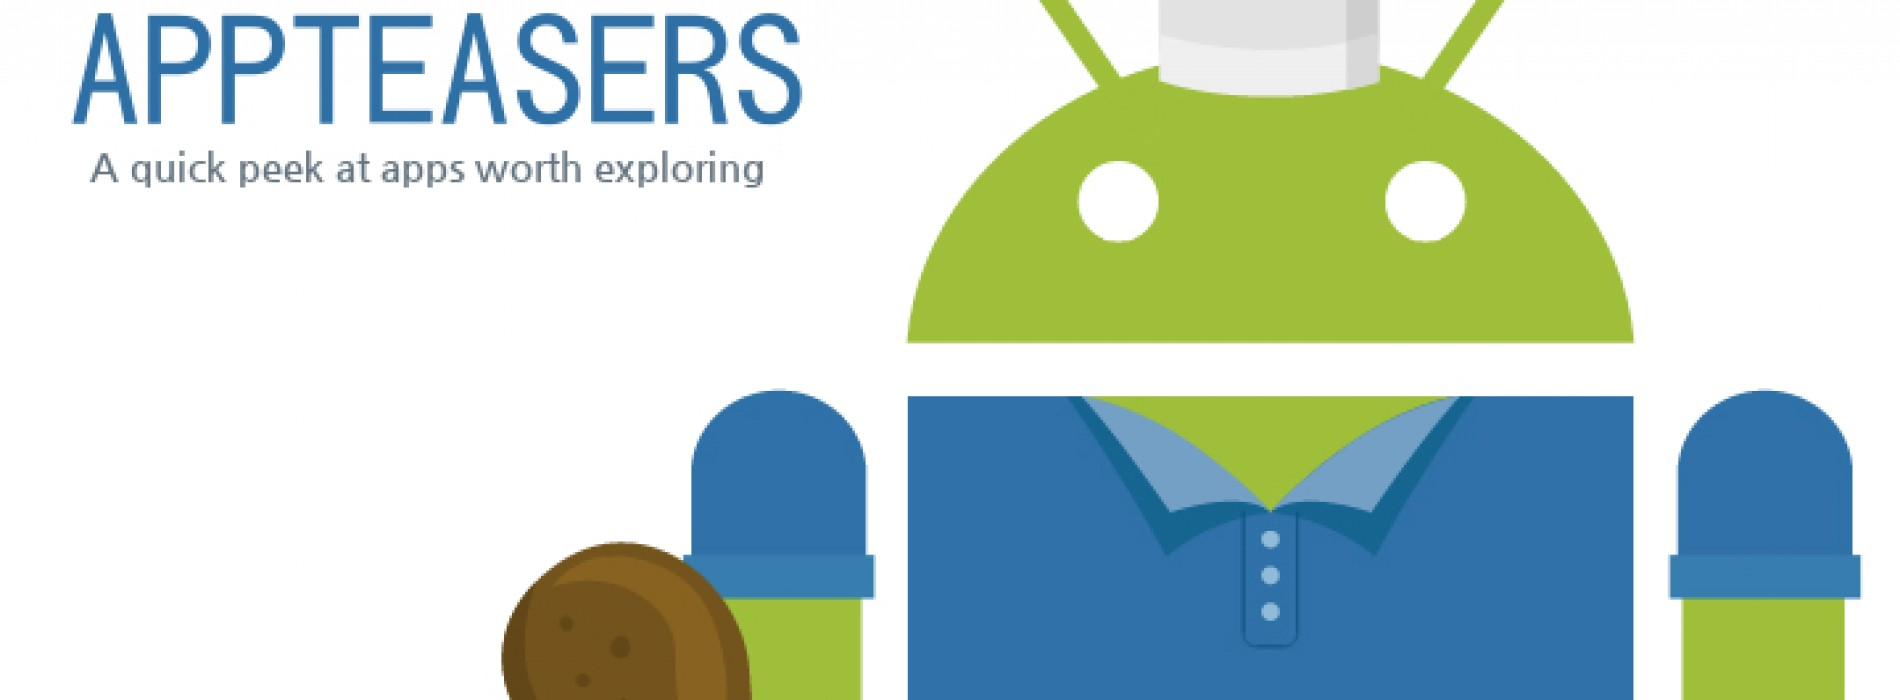 APPTEASERS: 15 Android games and apps you should know about (March 7)